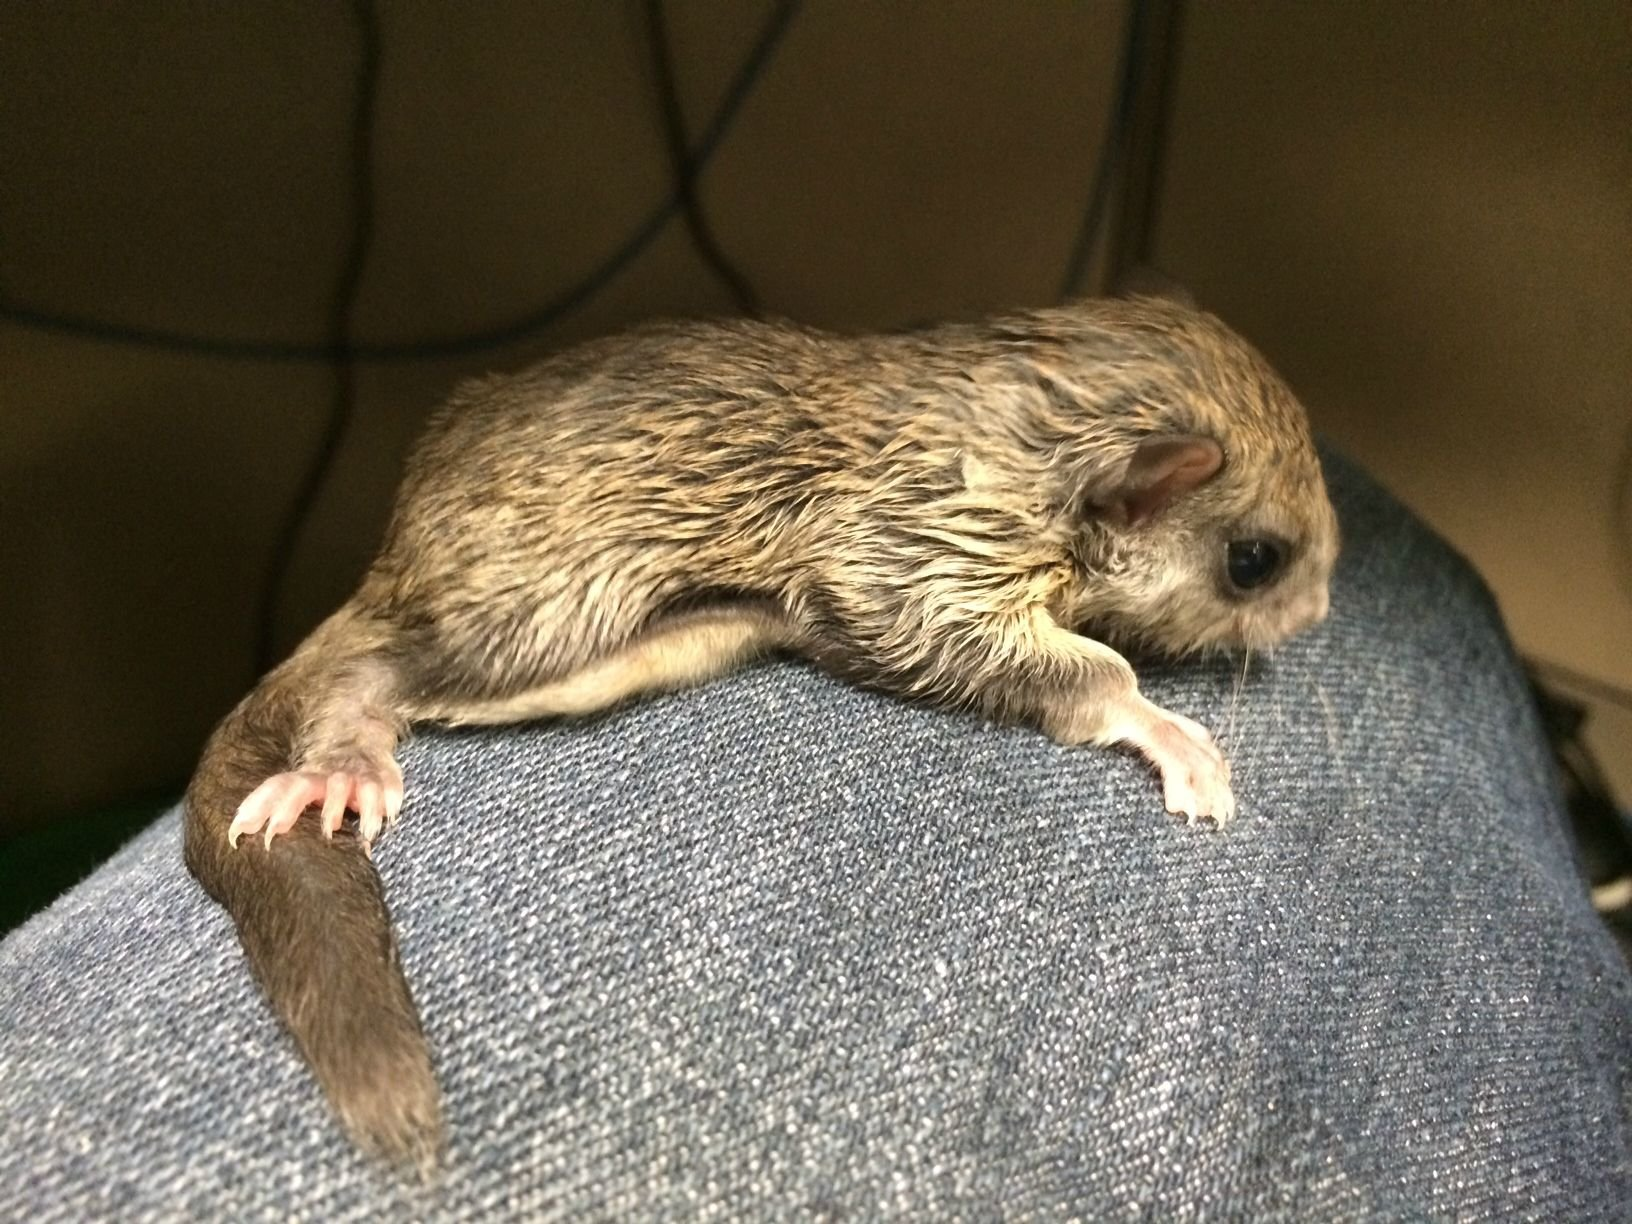 A baby flying squirrel named Biscuits was rescued from a sidewalk in the scorching sun | Animals Zone